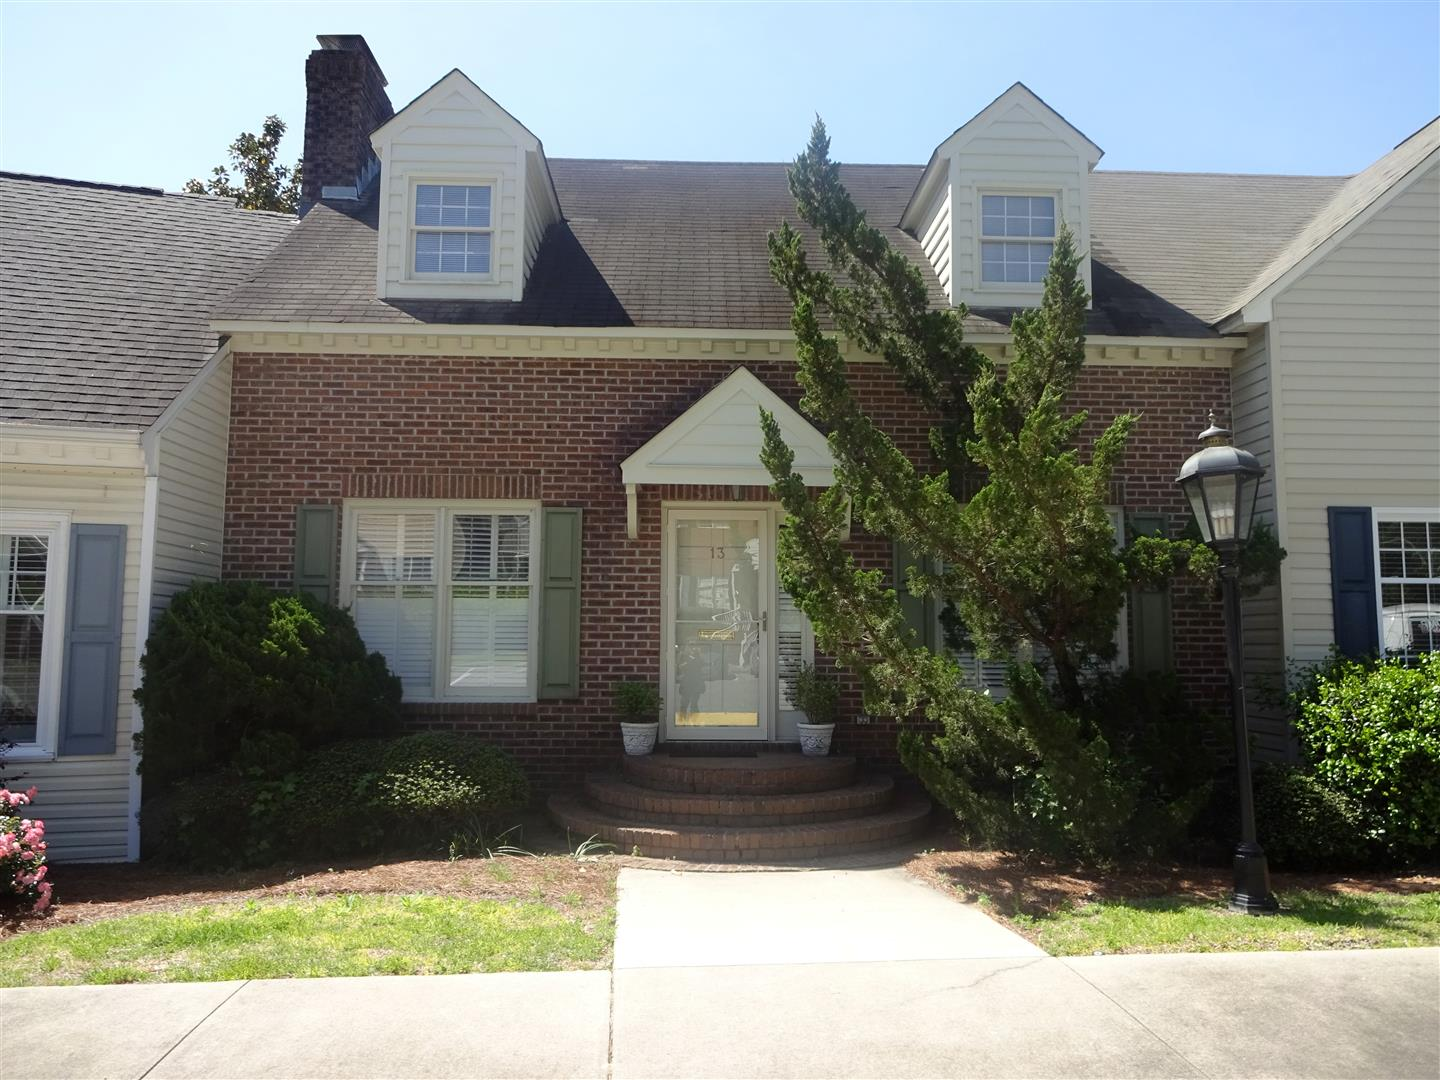 13 SAINT MARYS PLACE Wilmington NC 28403 id-1911922 homes for sale